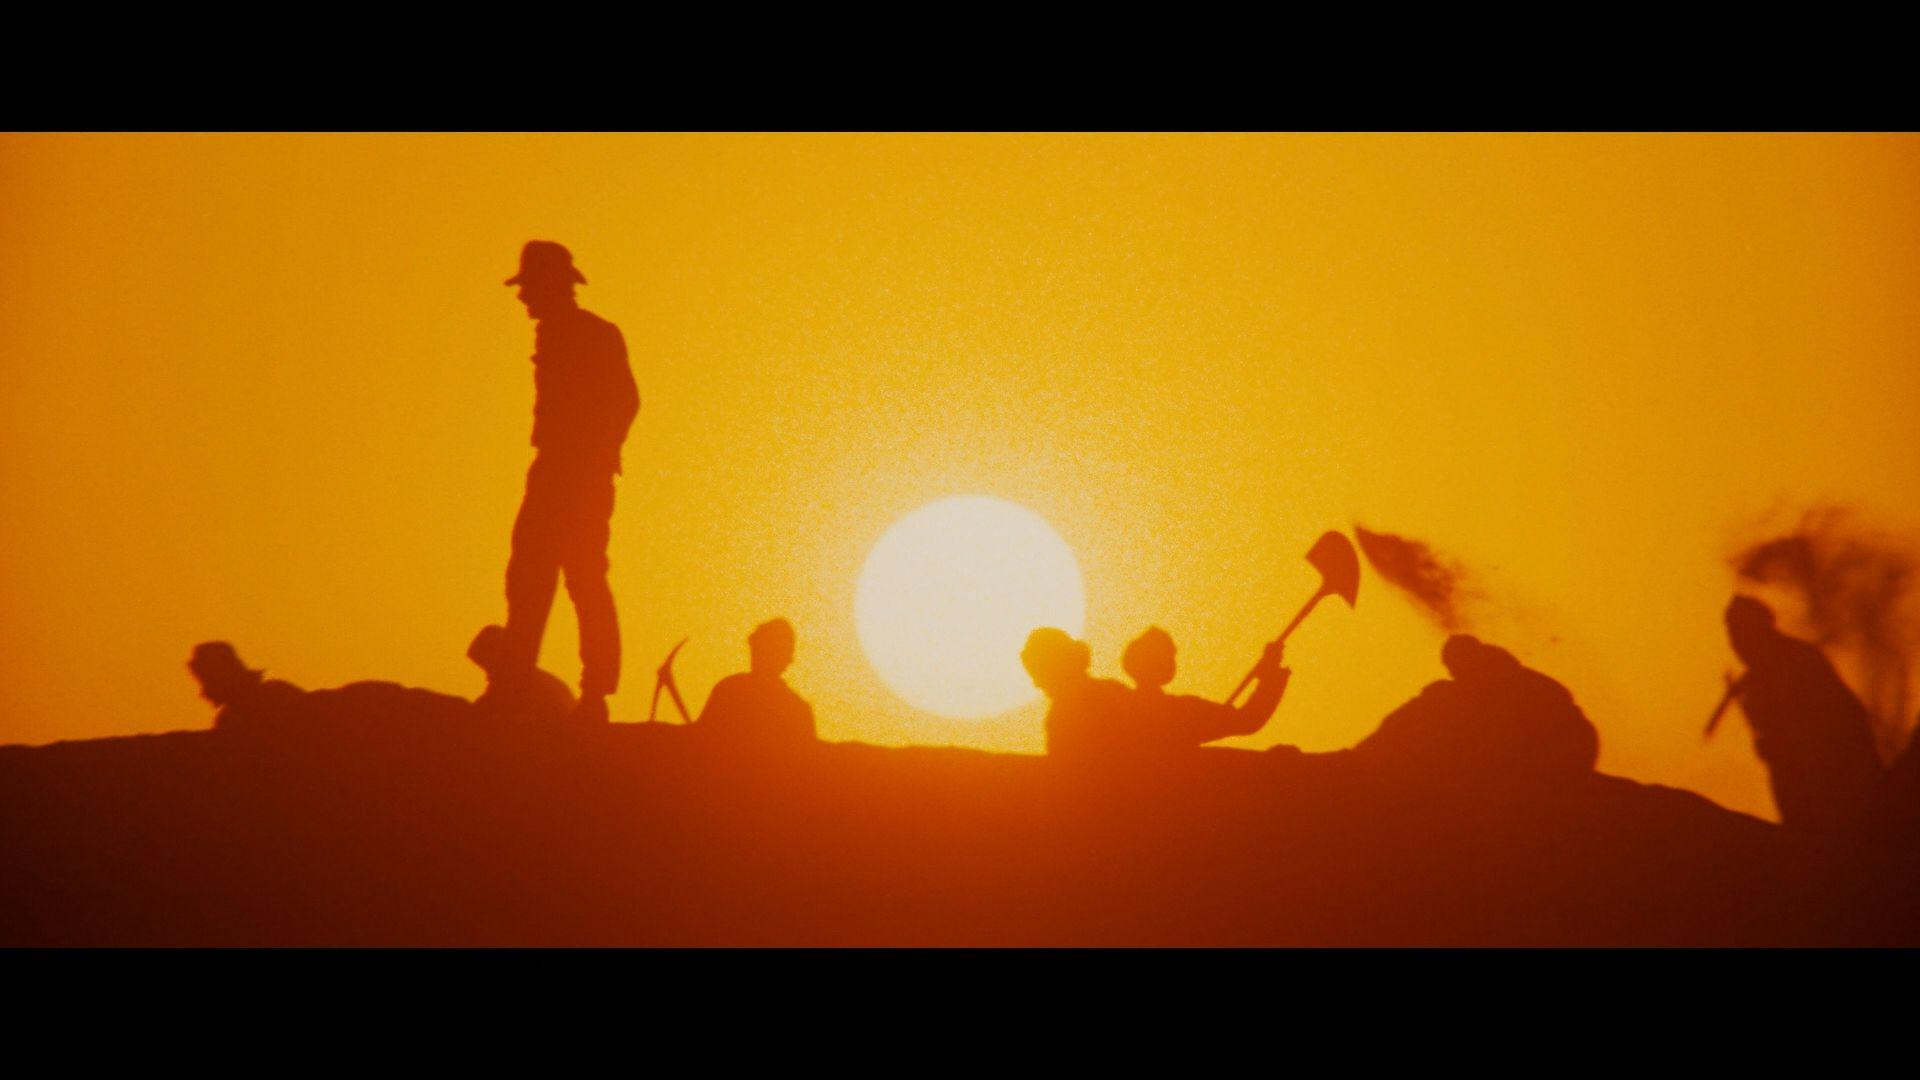 Raiders of the Lost Ark (1981) wallpapers | HD Windows Wallpapers ...